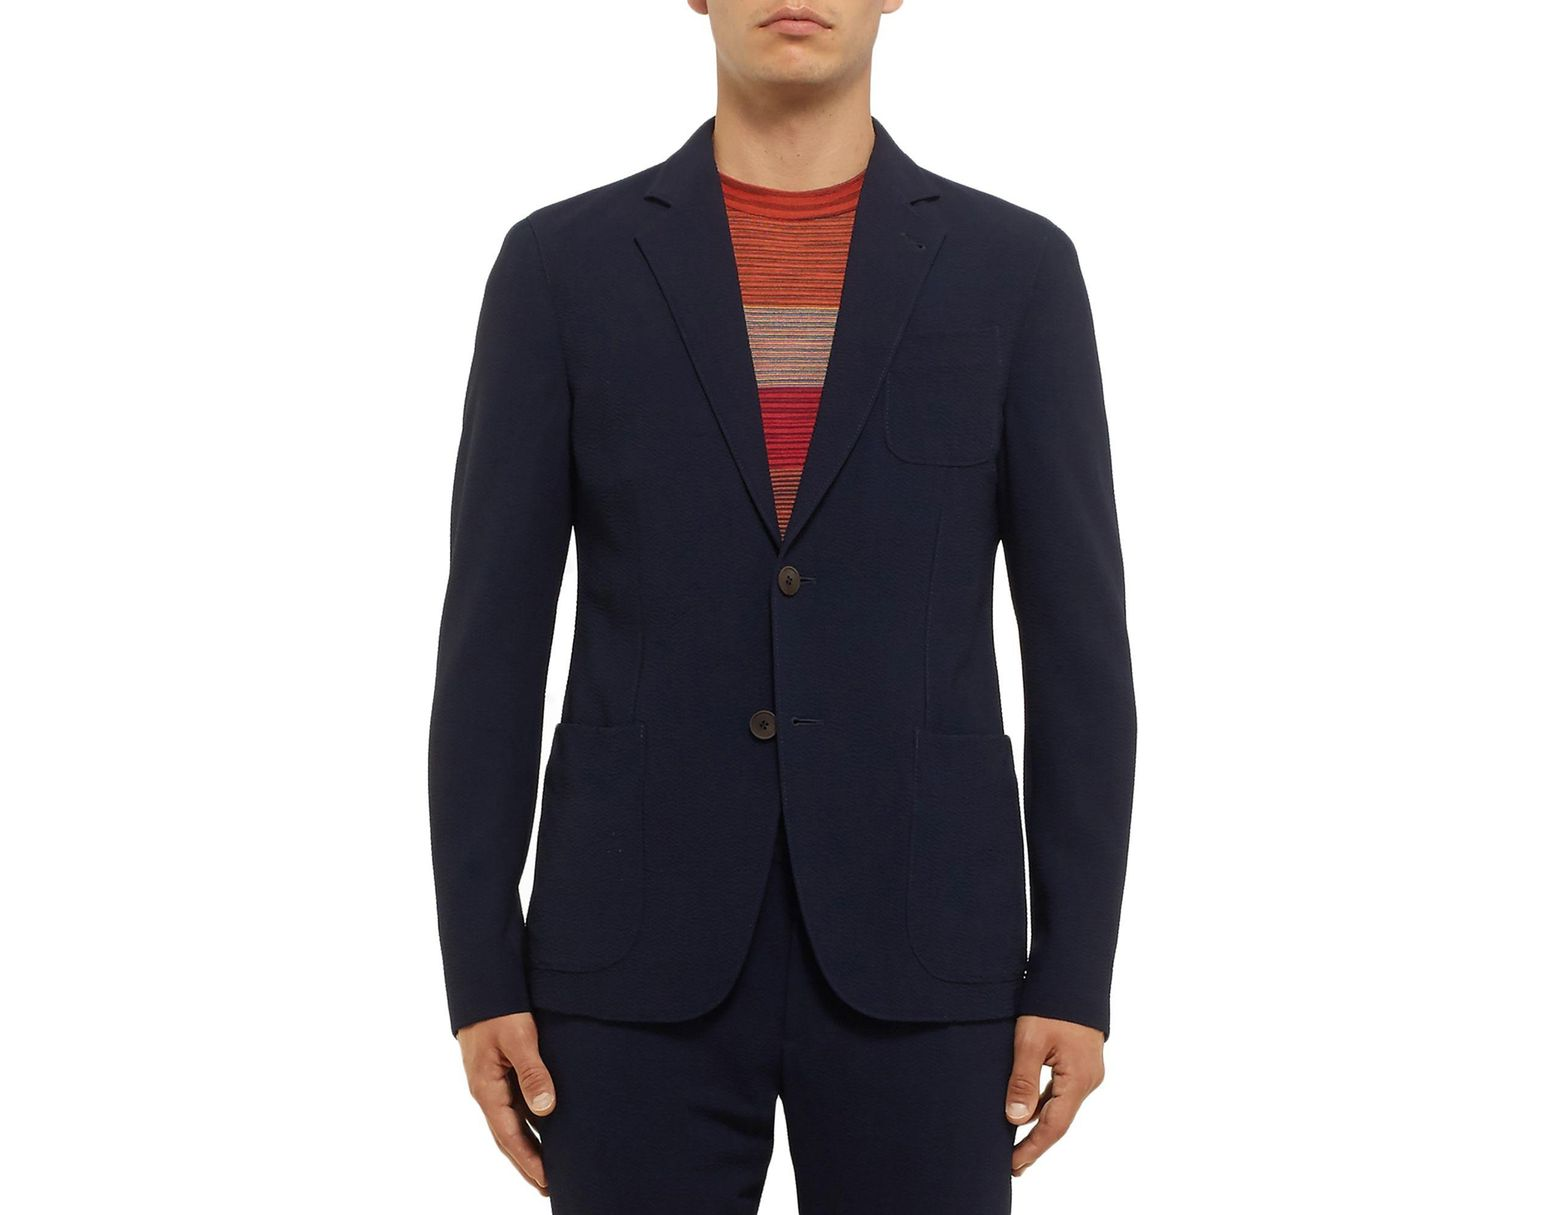 7f42a033a3f36 Giorgio Armani Upton Virgin Wool-blend Seersucker Suit Jacket in Blue for  Men - Save 50% - Lyst